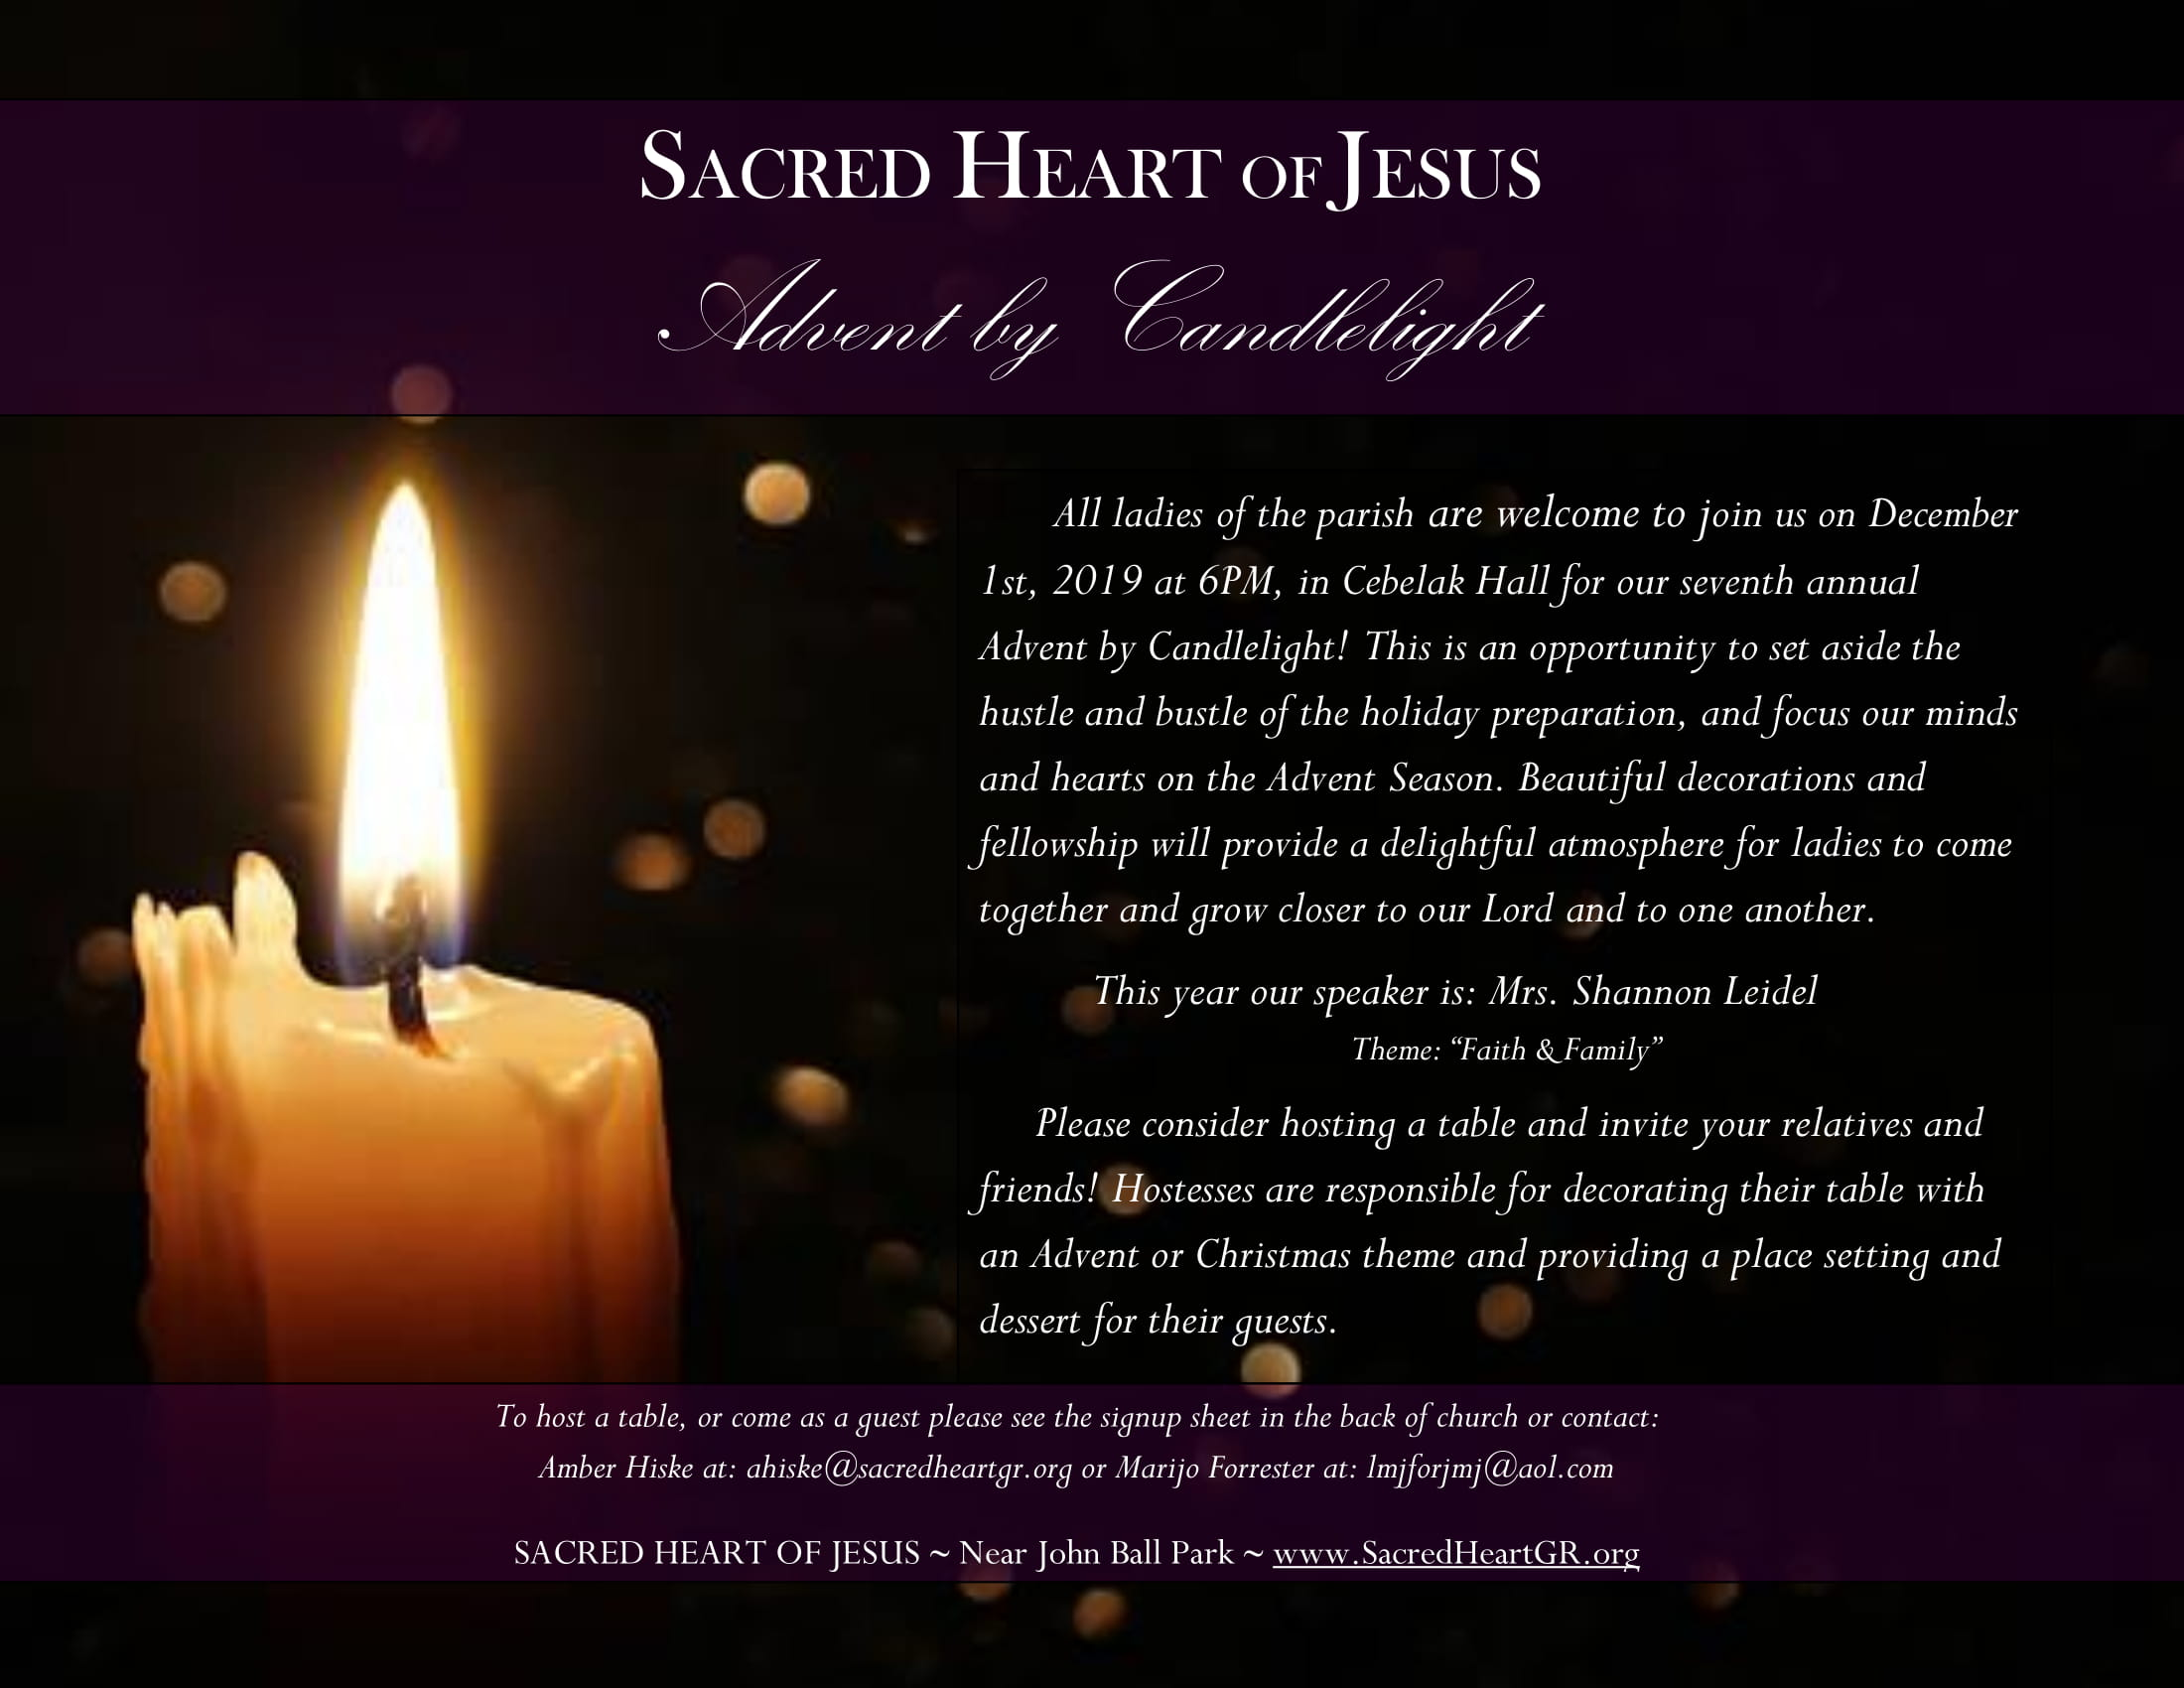 Advent by Candlelight – Dec. 1st